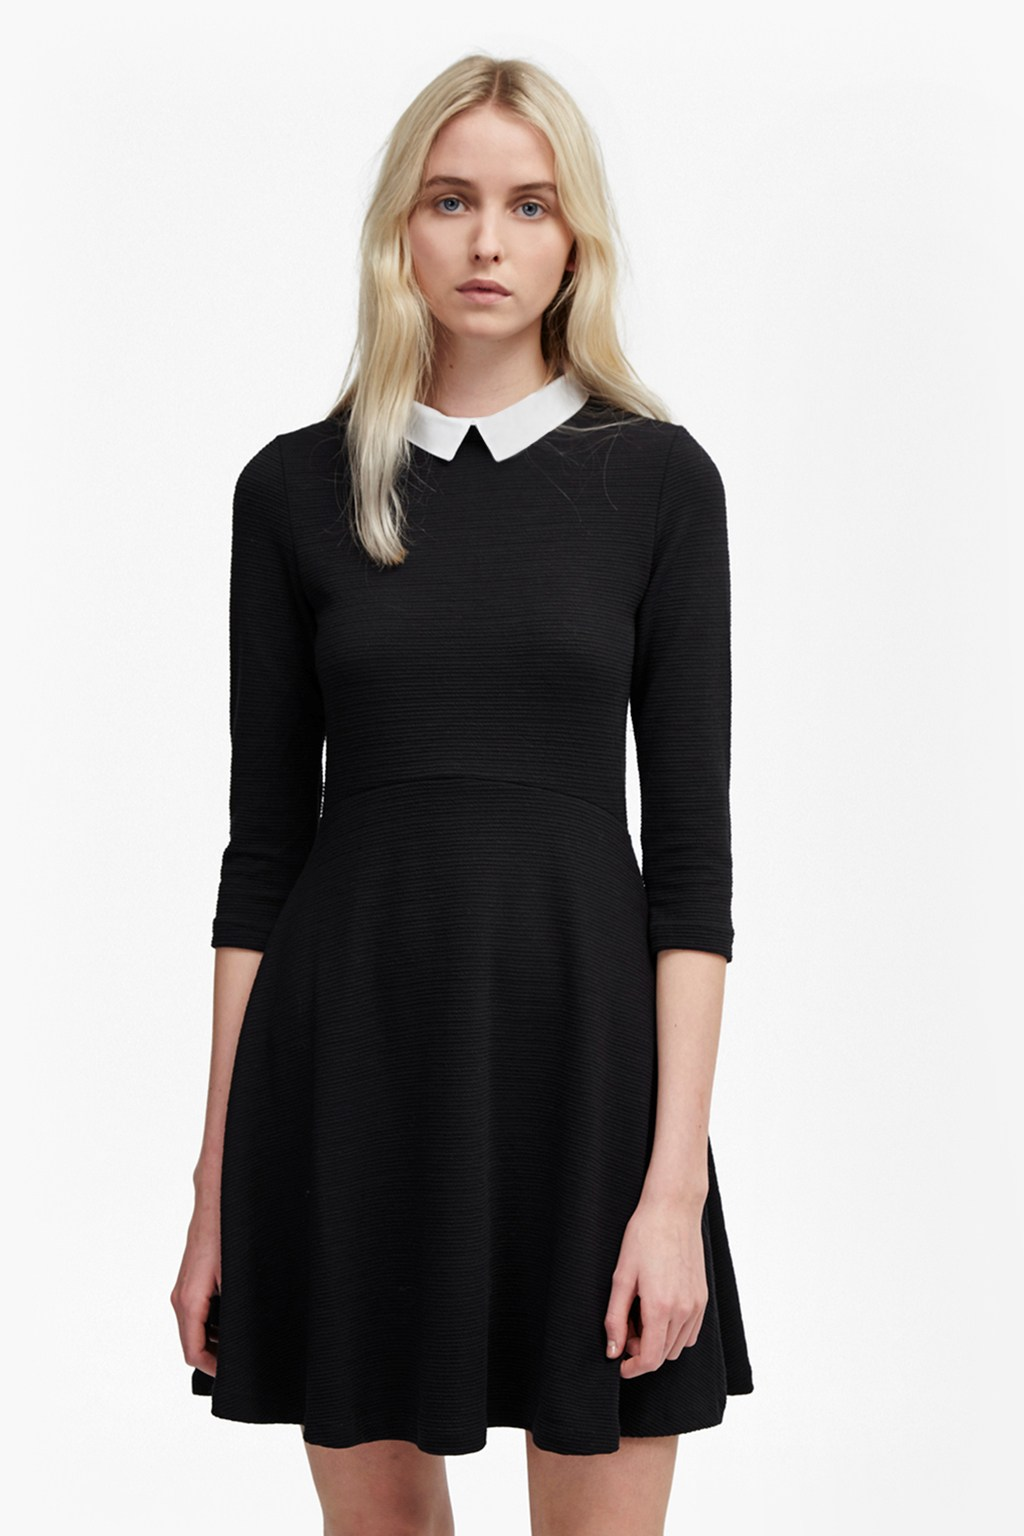 Shop collared sleeveless shirt dress at Neiman Marcus, where you will find free shipping on the latest in fashion from top designers.